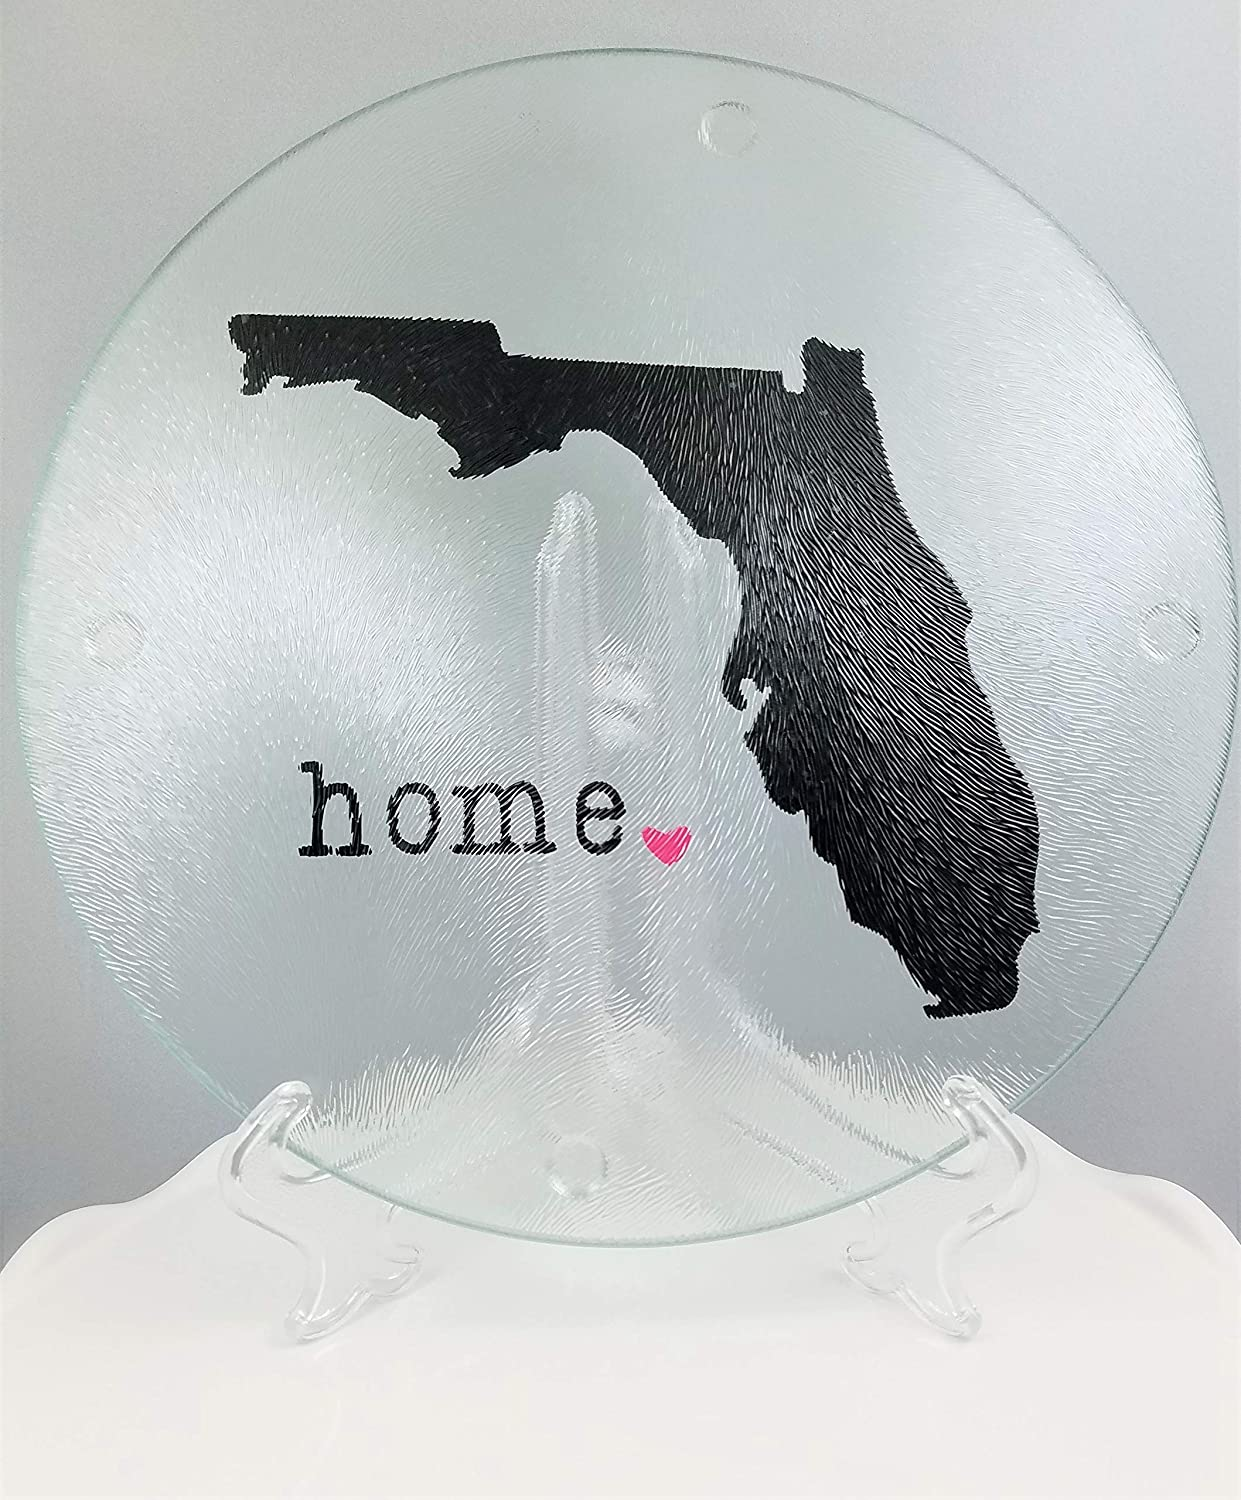 Florida Cutting Board/Plate - Florida Home Heart